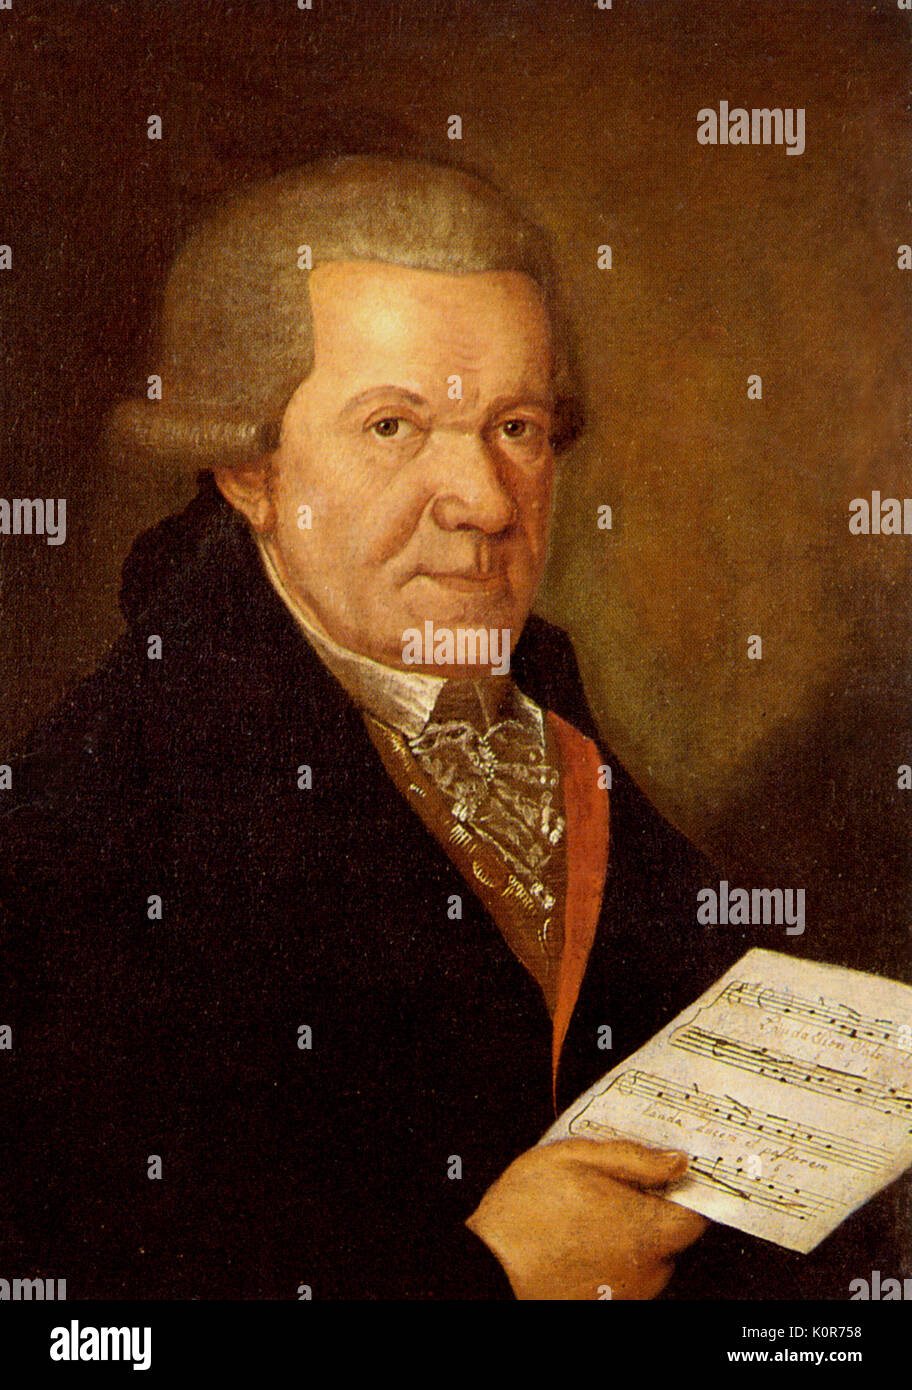 johann haydn Listen tojoseph haydn on deezer with music streaming on deezer you can discover more than 53 million tracks, create your own playlists, and share your.